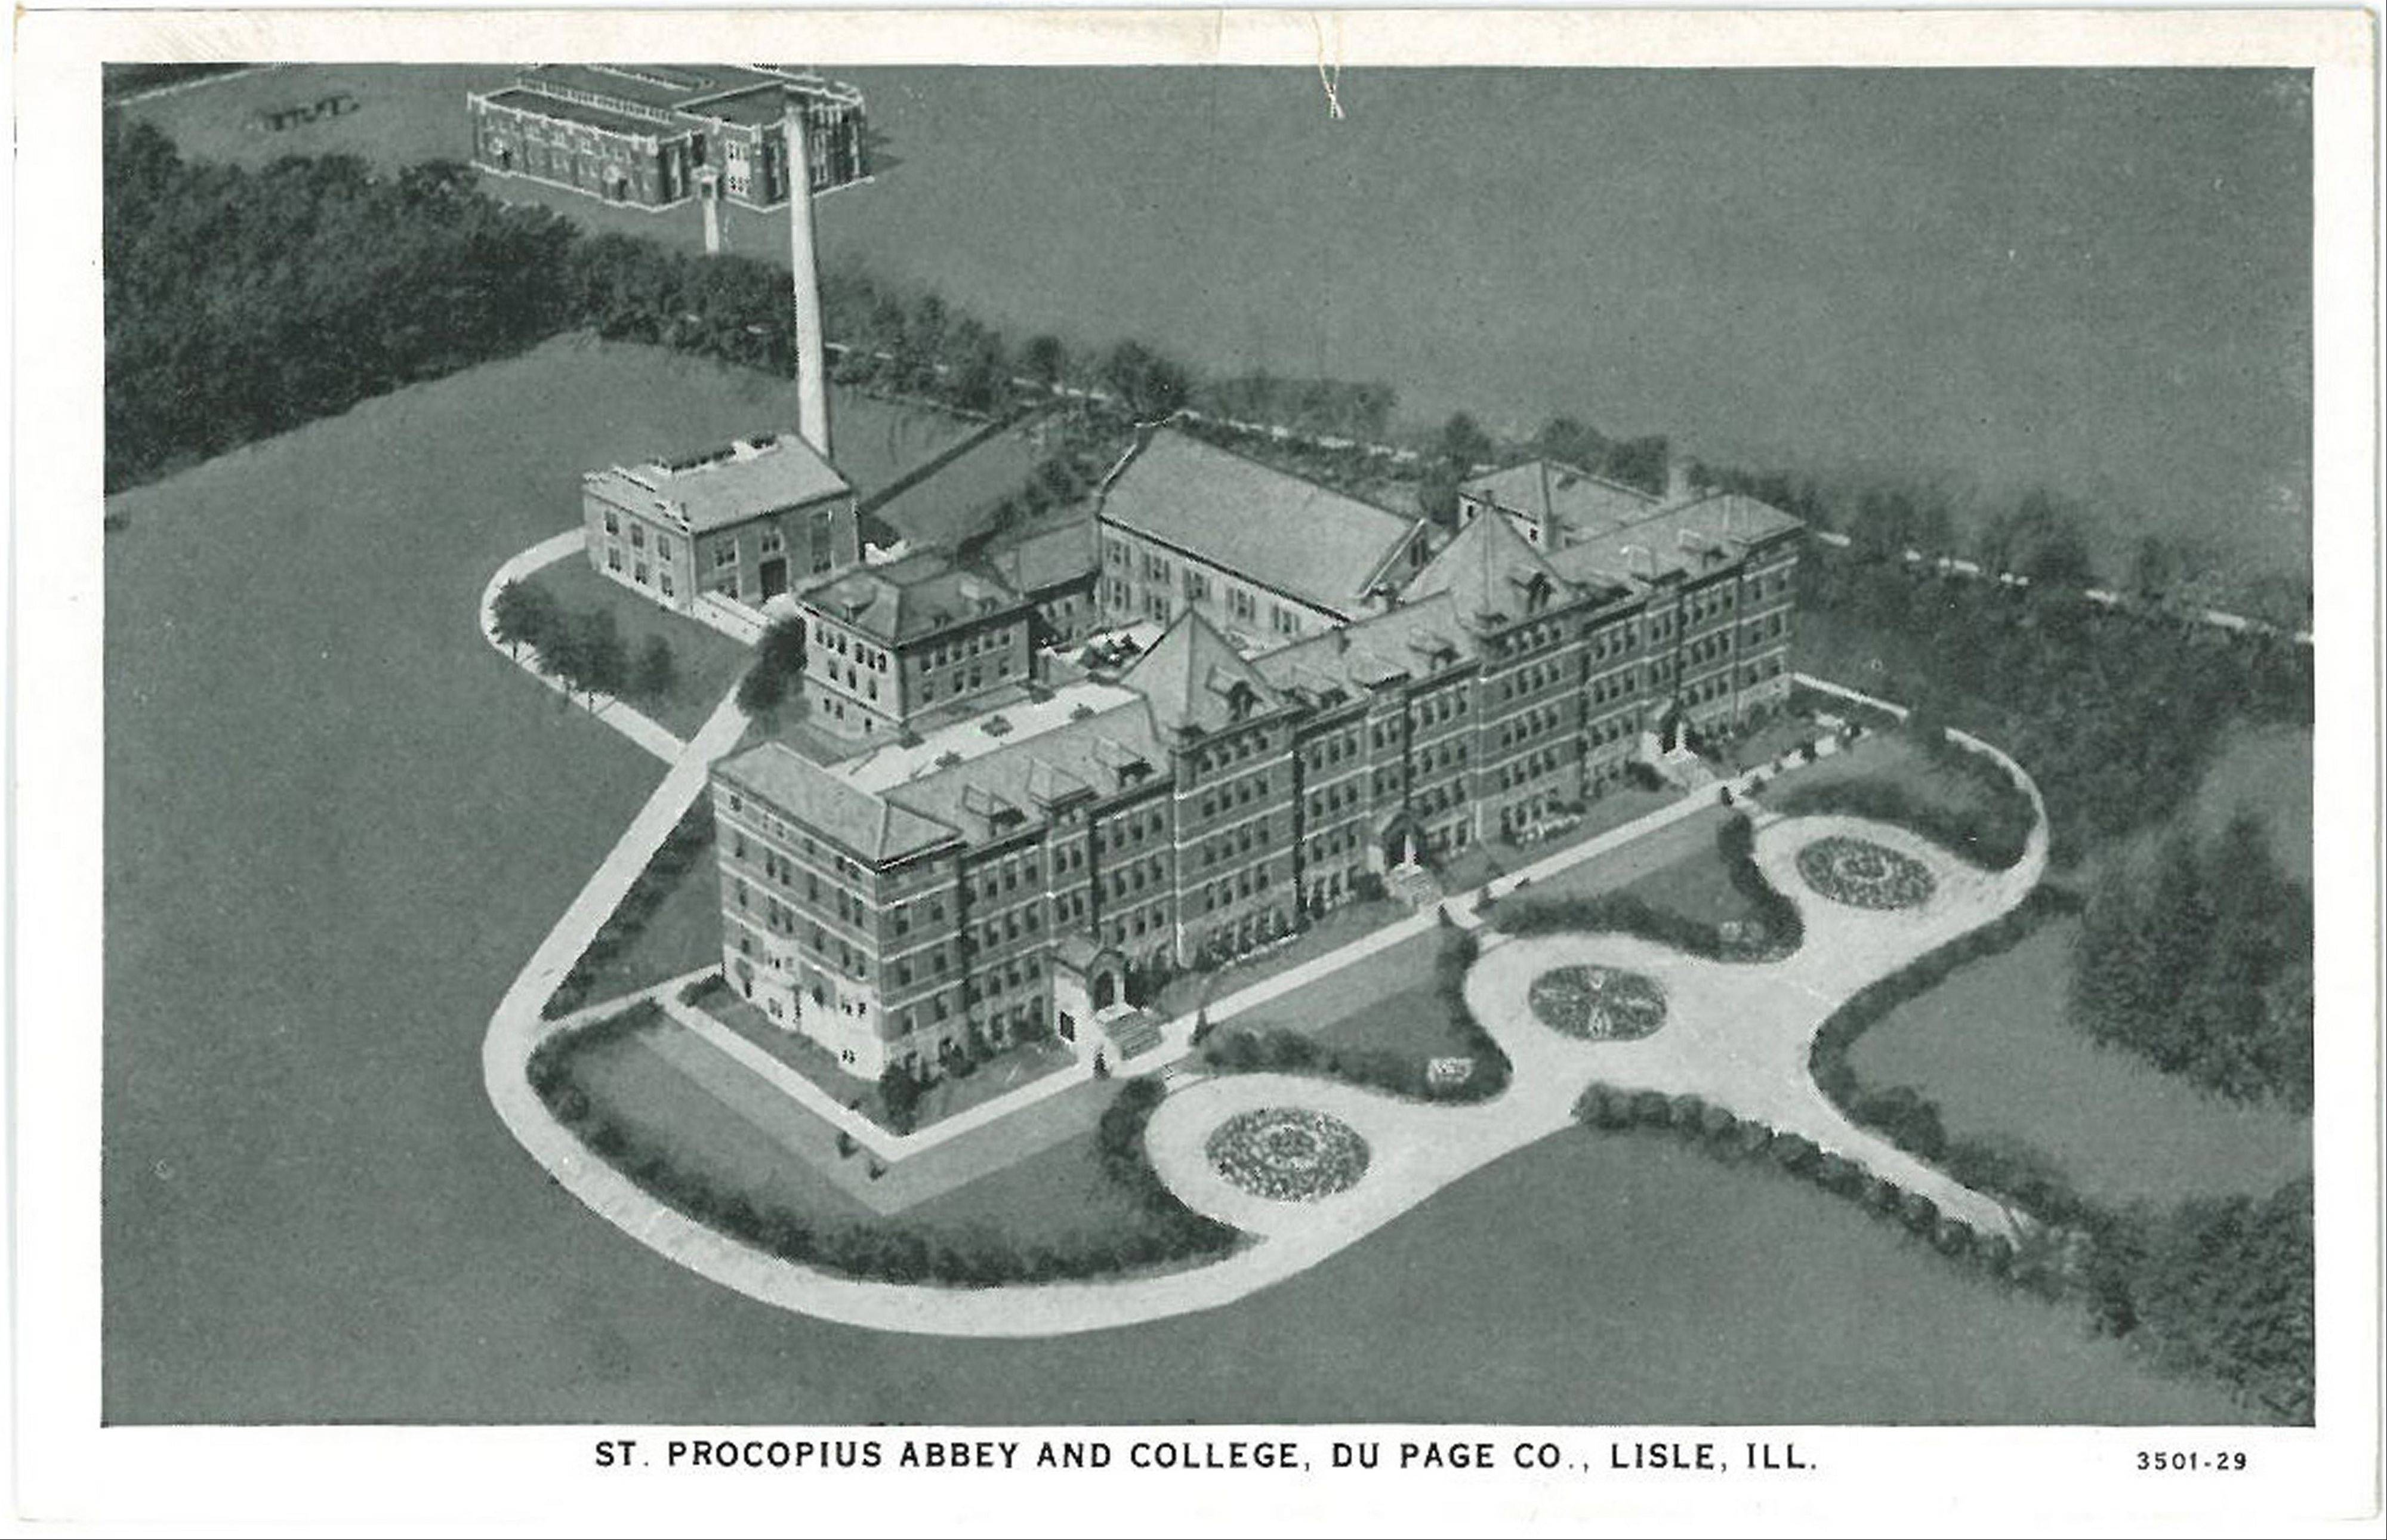 This postcard gives an aerial view of the start of St. Procopius College, which has grown into Benedictine University in Lisle.